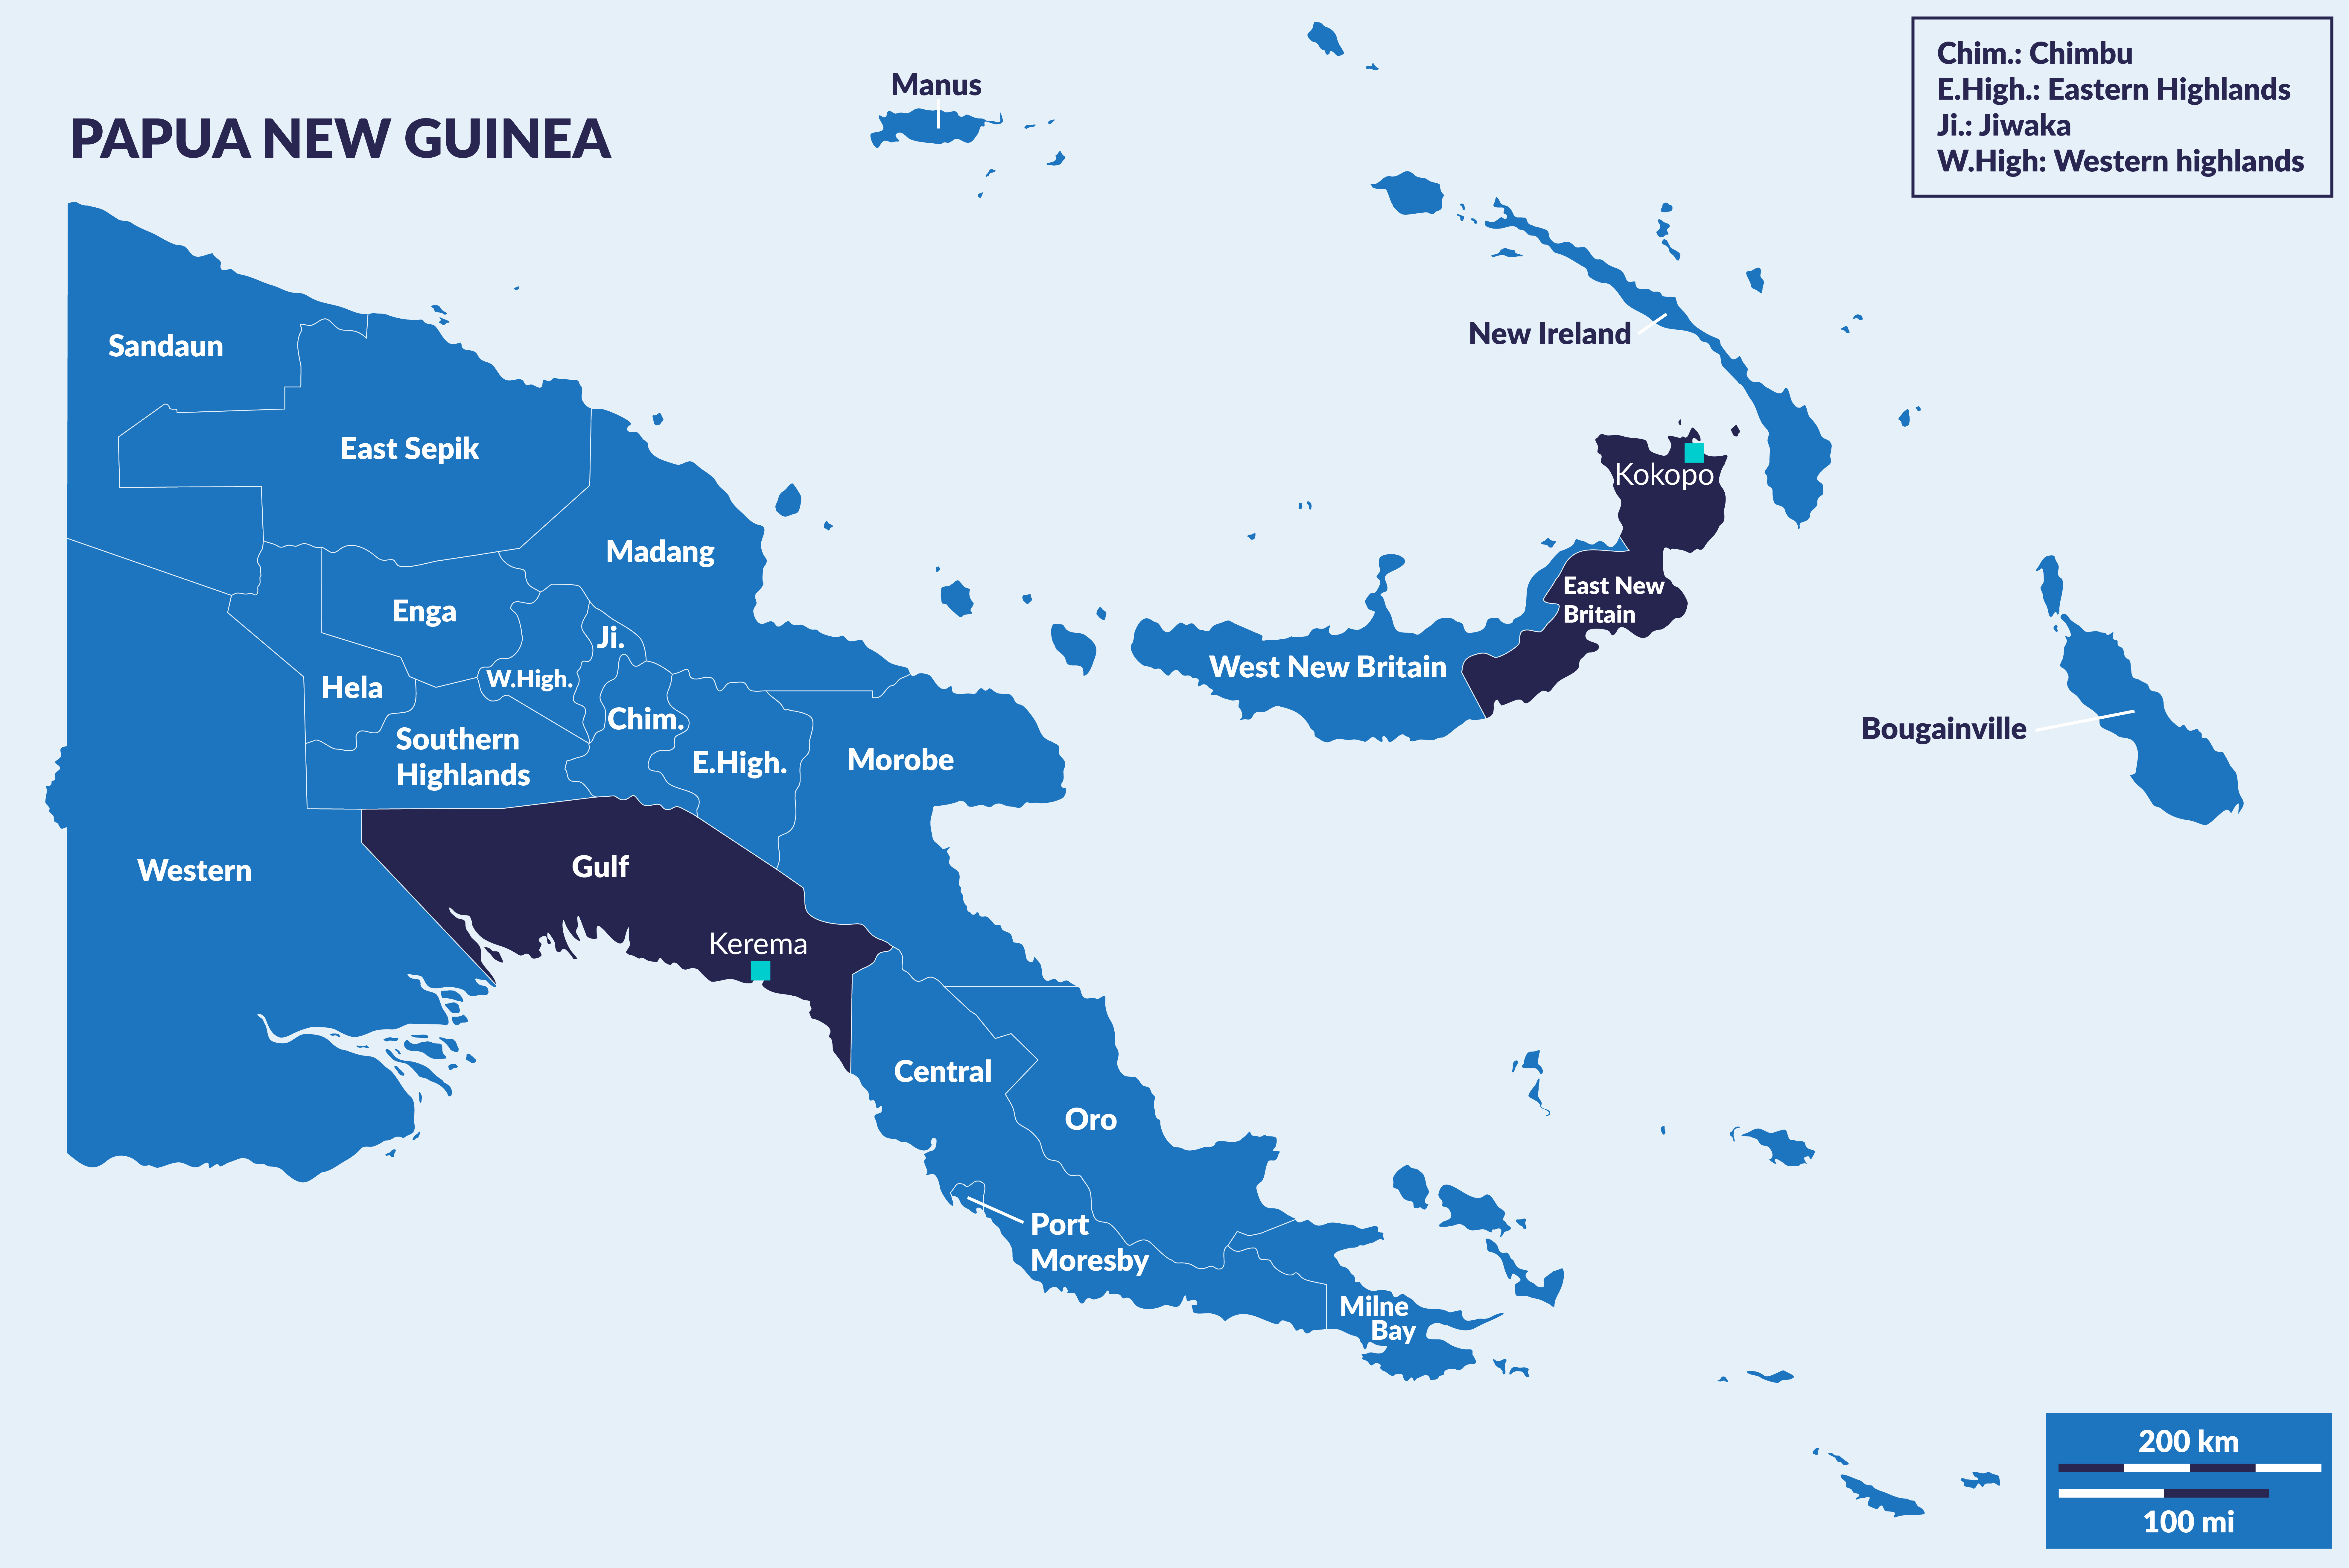 Map of PNG showing Gulf and East New Britain provinces